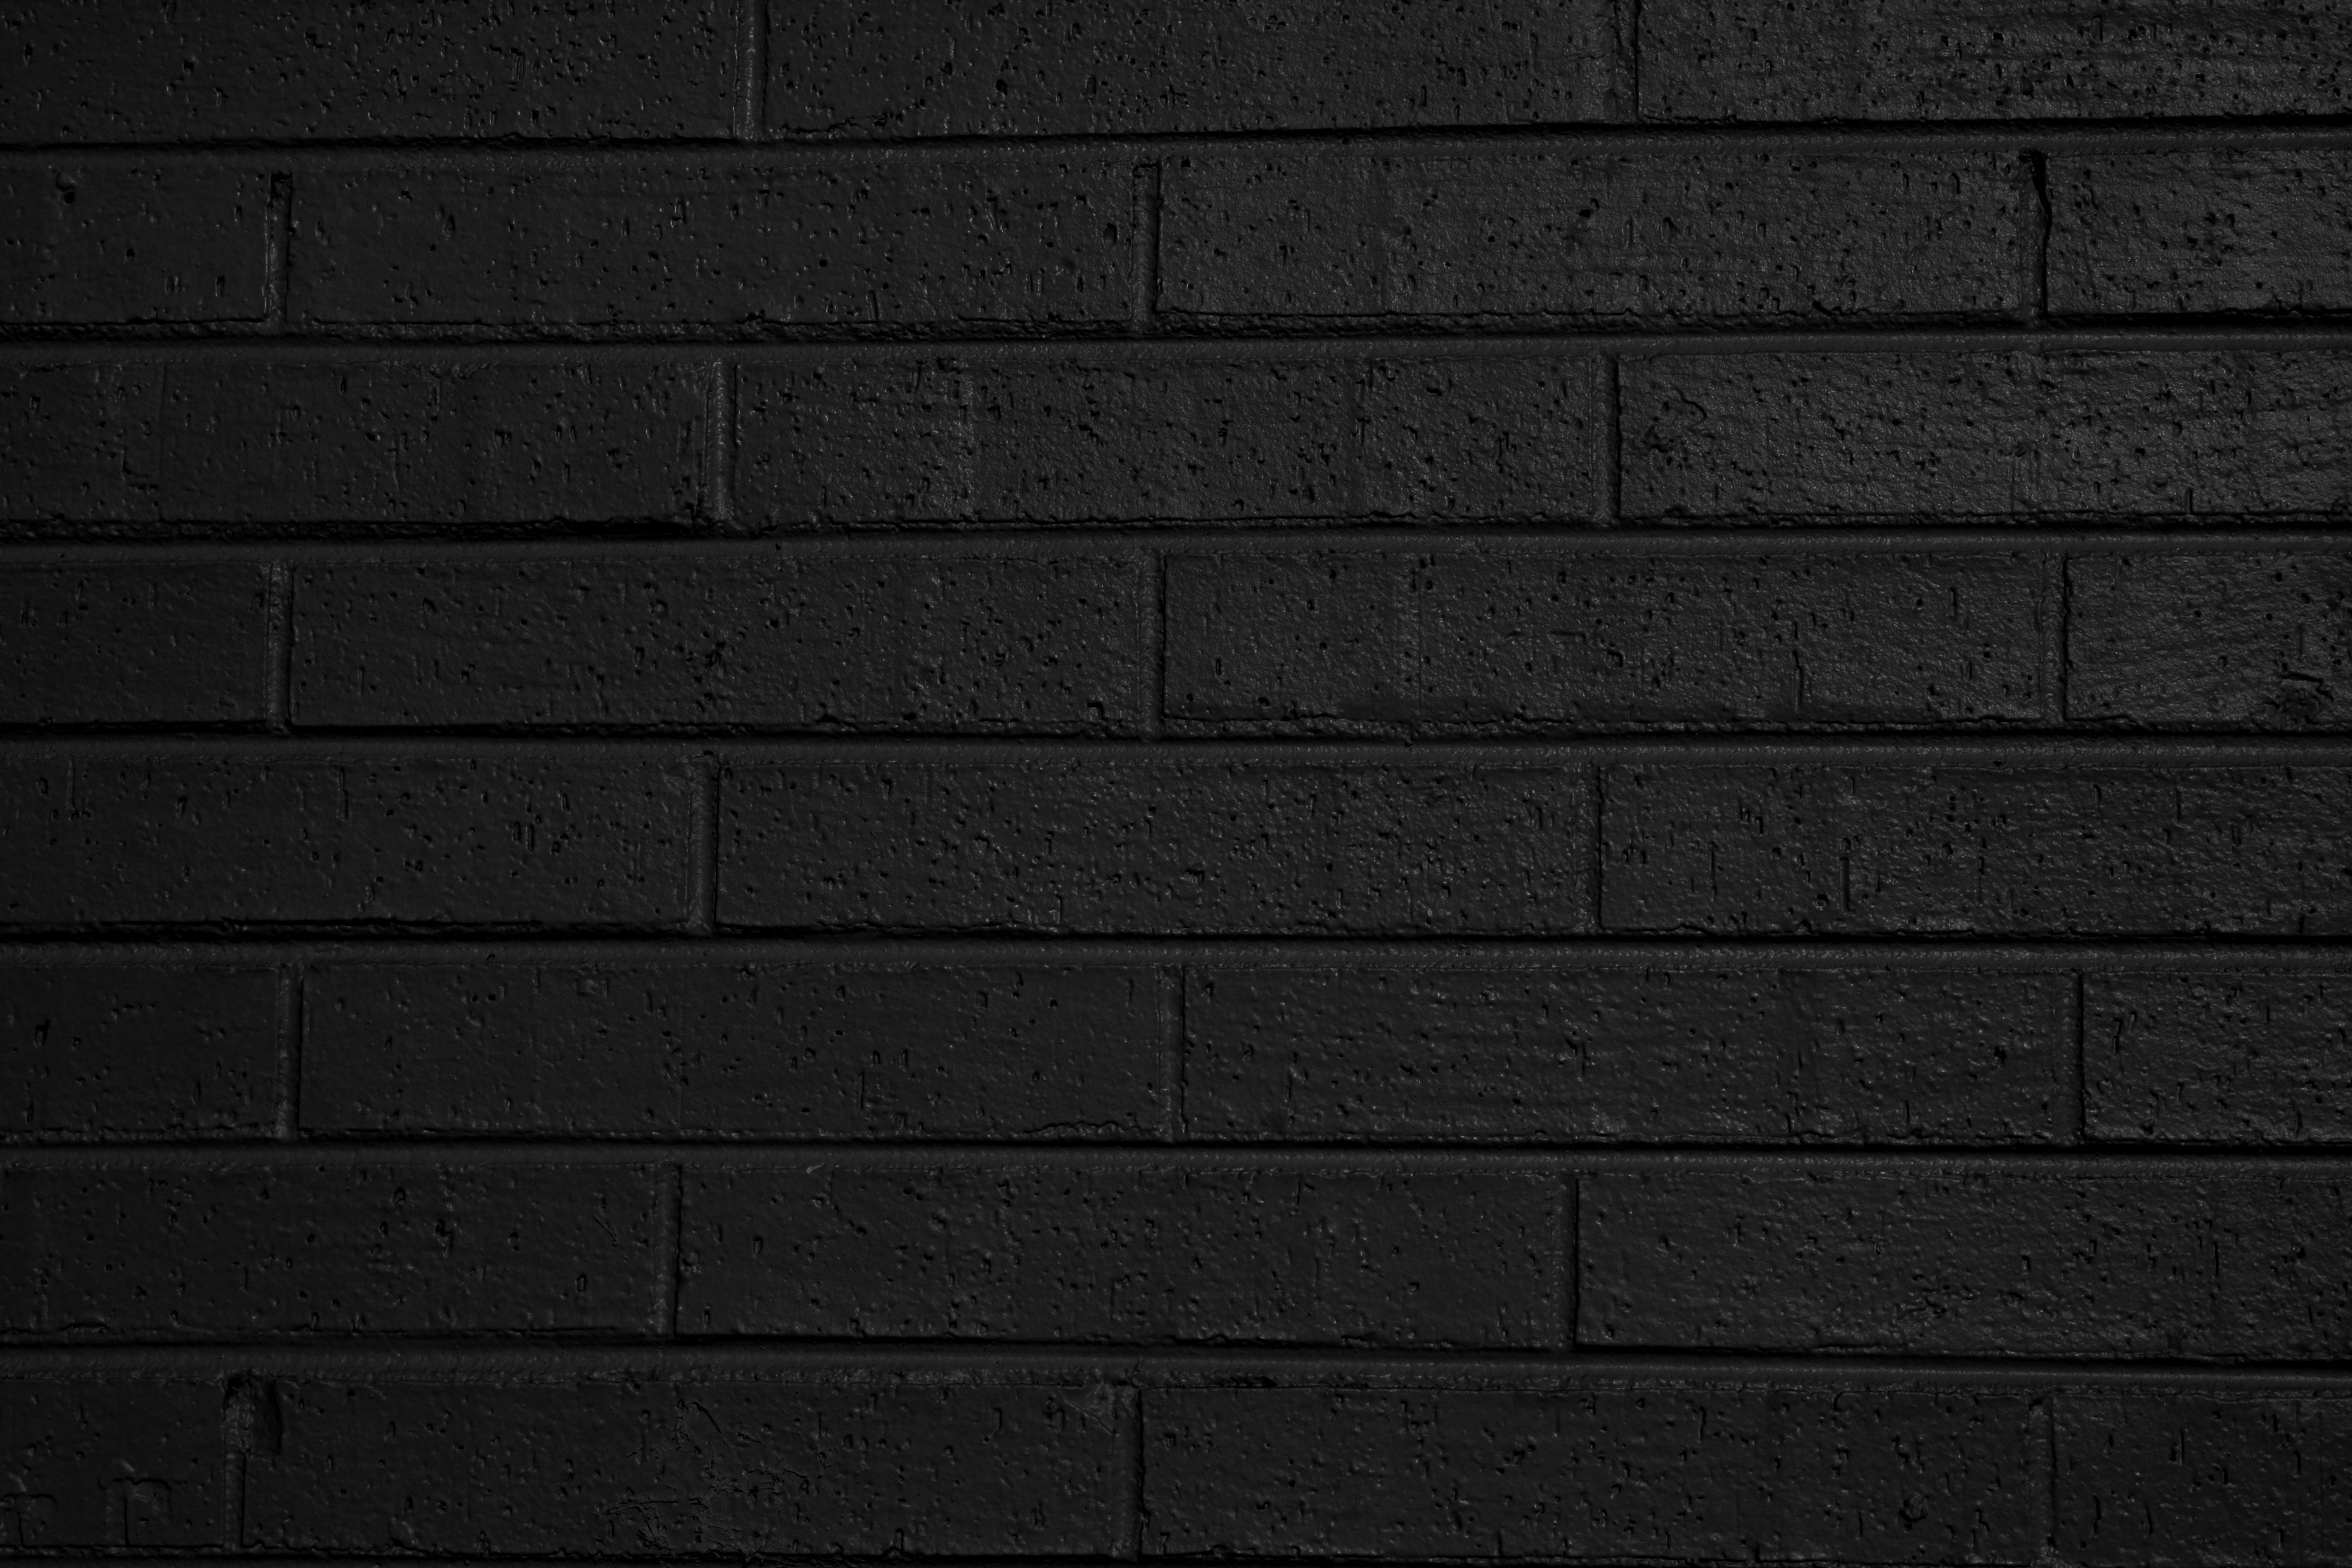 Black brick wallpaper 2017 grasscloth wallpaper for Black 3d brick wallpaper